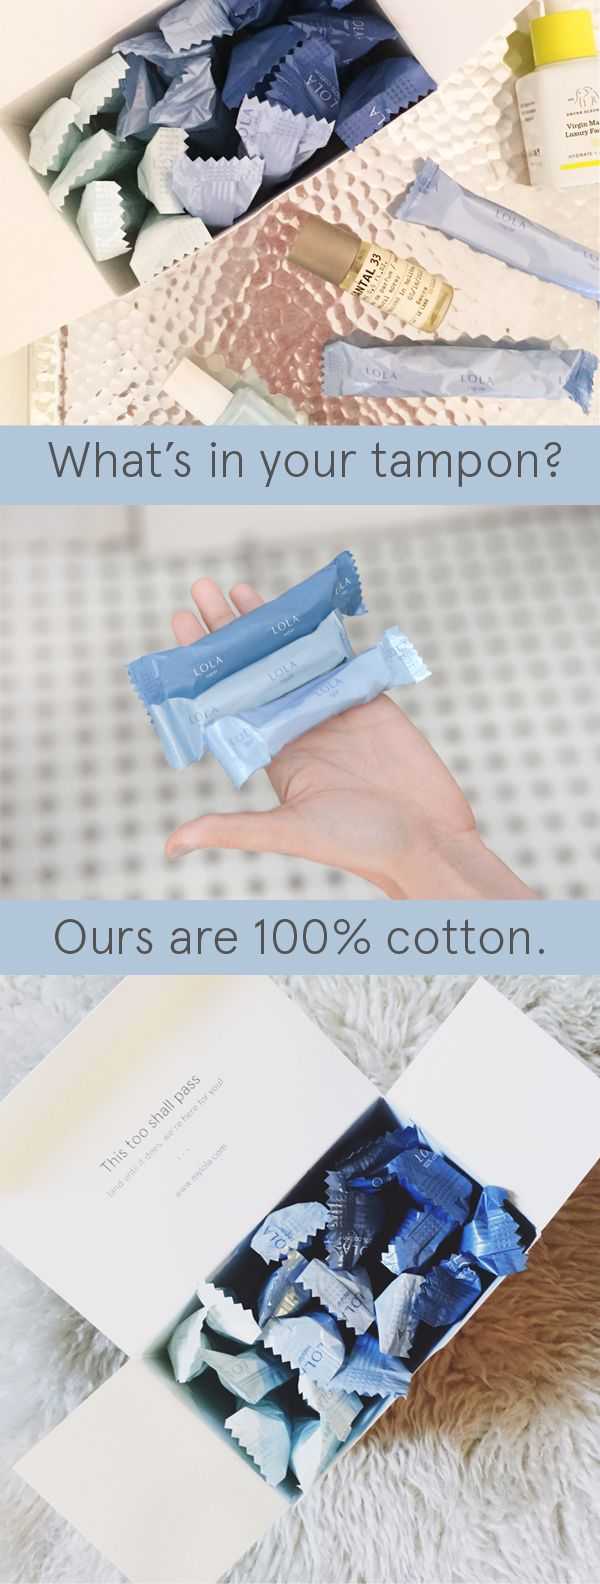 Meet LOLA: 100% cotton tampons (no added fragrance, chemicals, synthetics, or dyes), customized assortment, delivered directly to your door. New customers get 2 boxes for price of one. Sign up today!